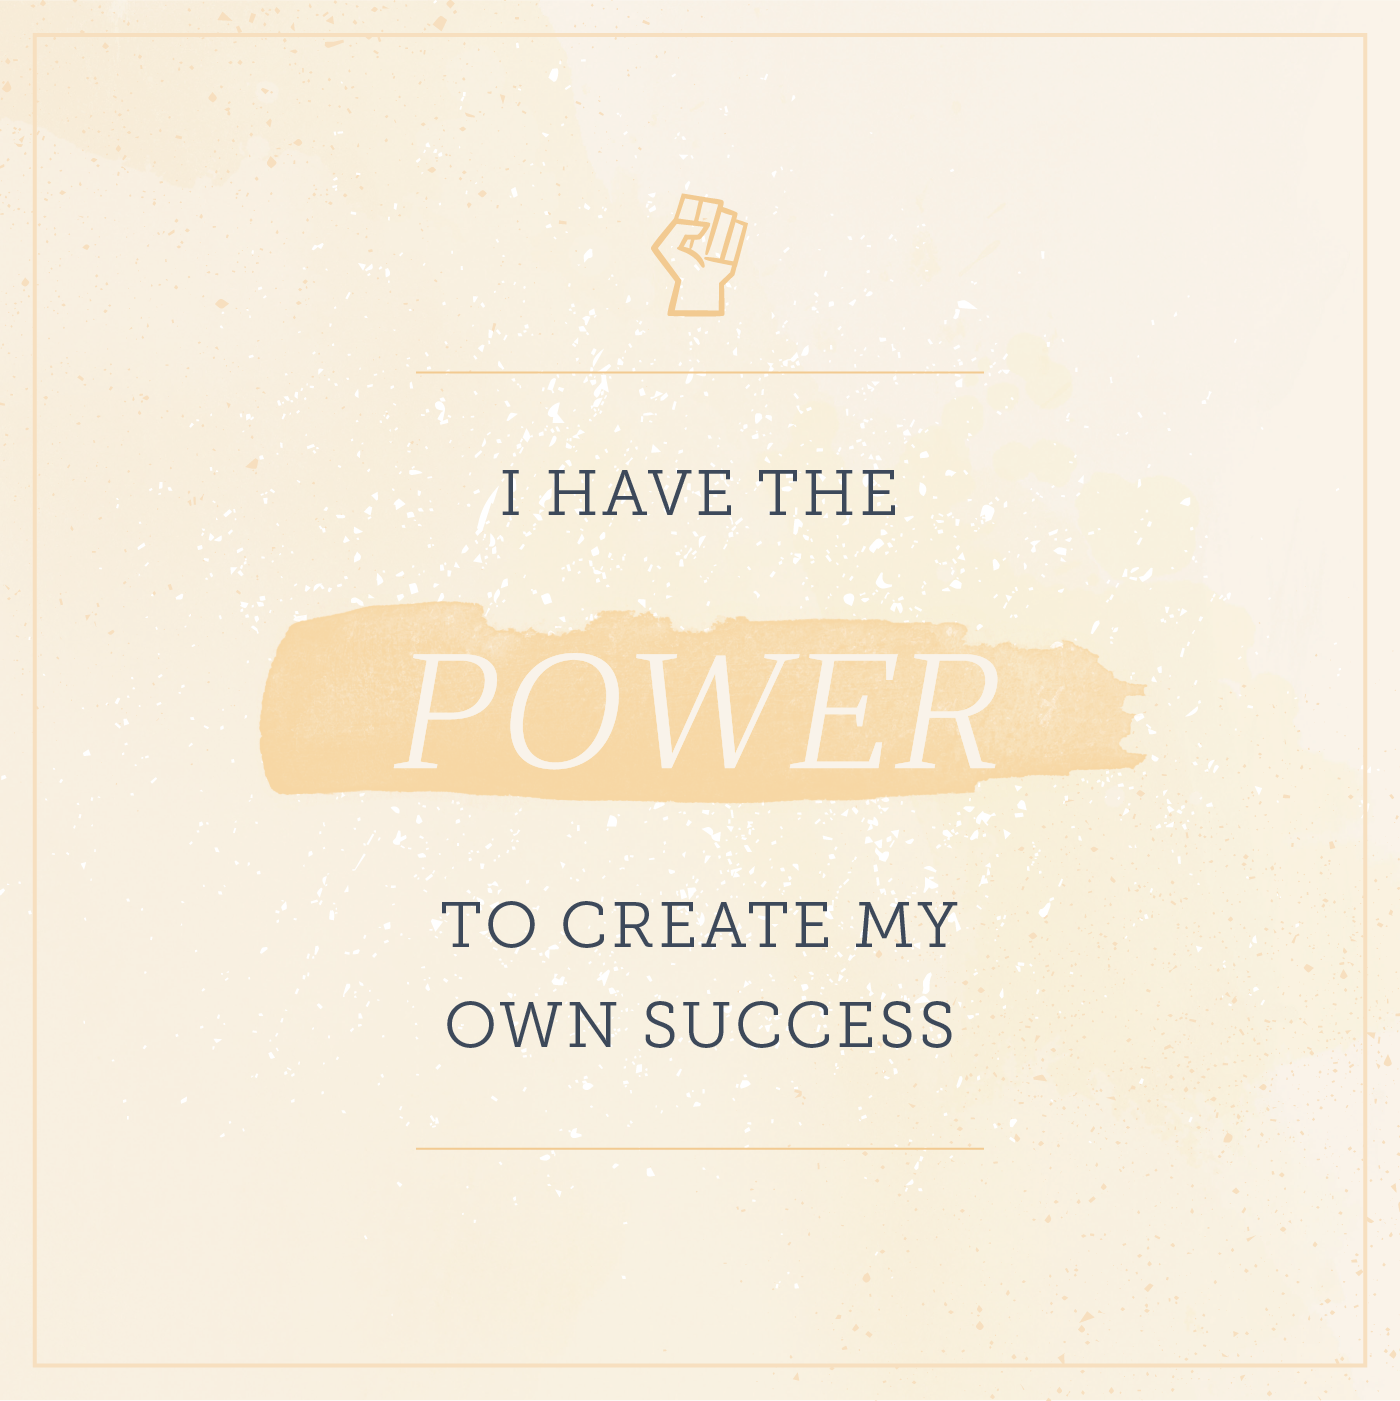 i have the power to create my own success